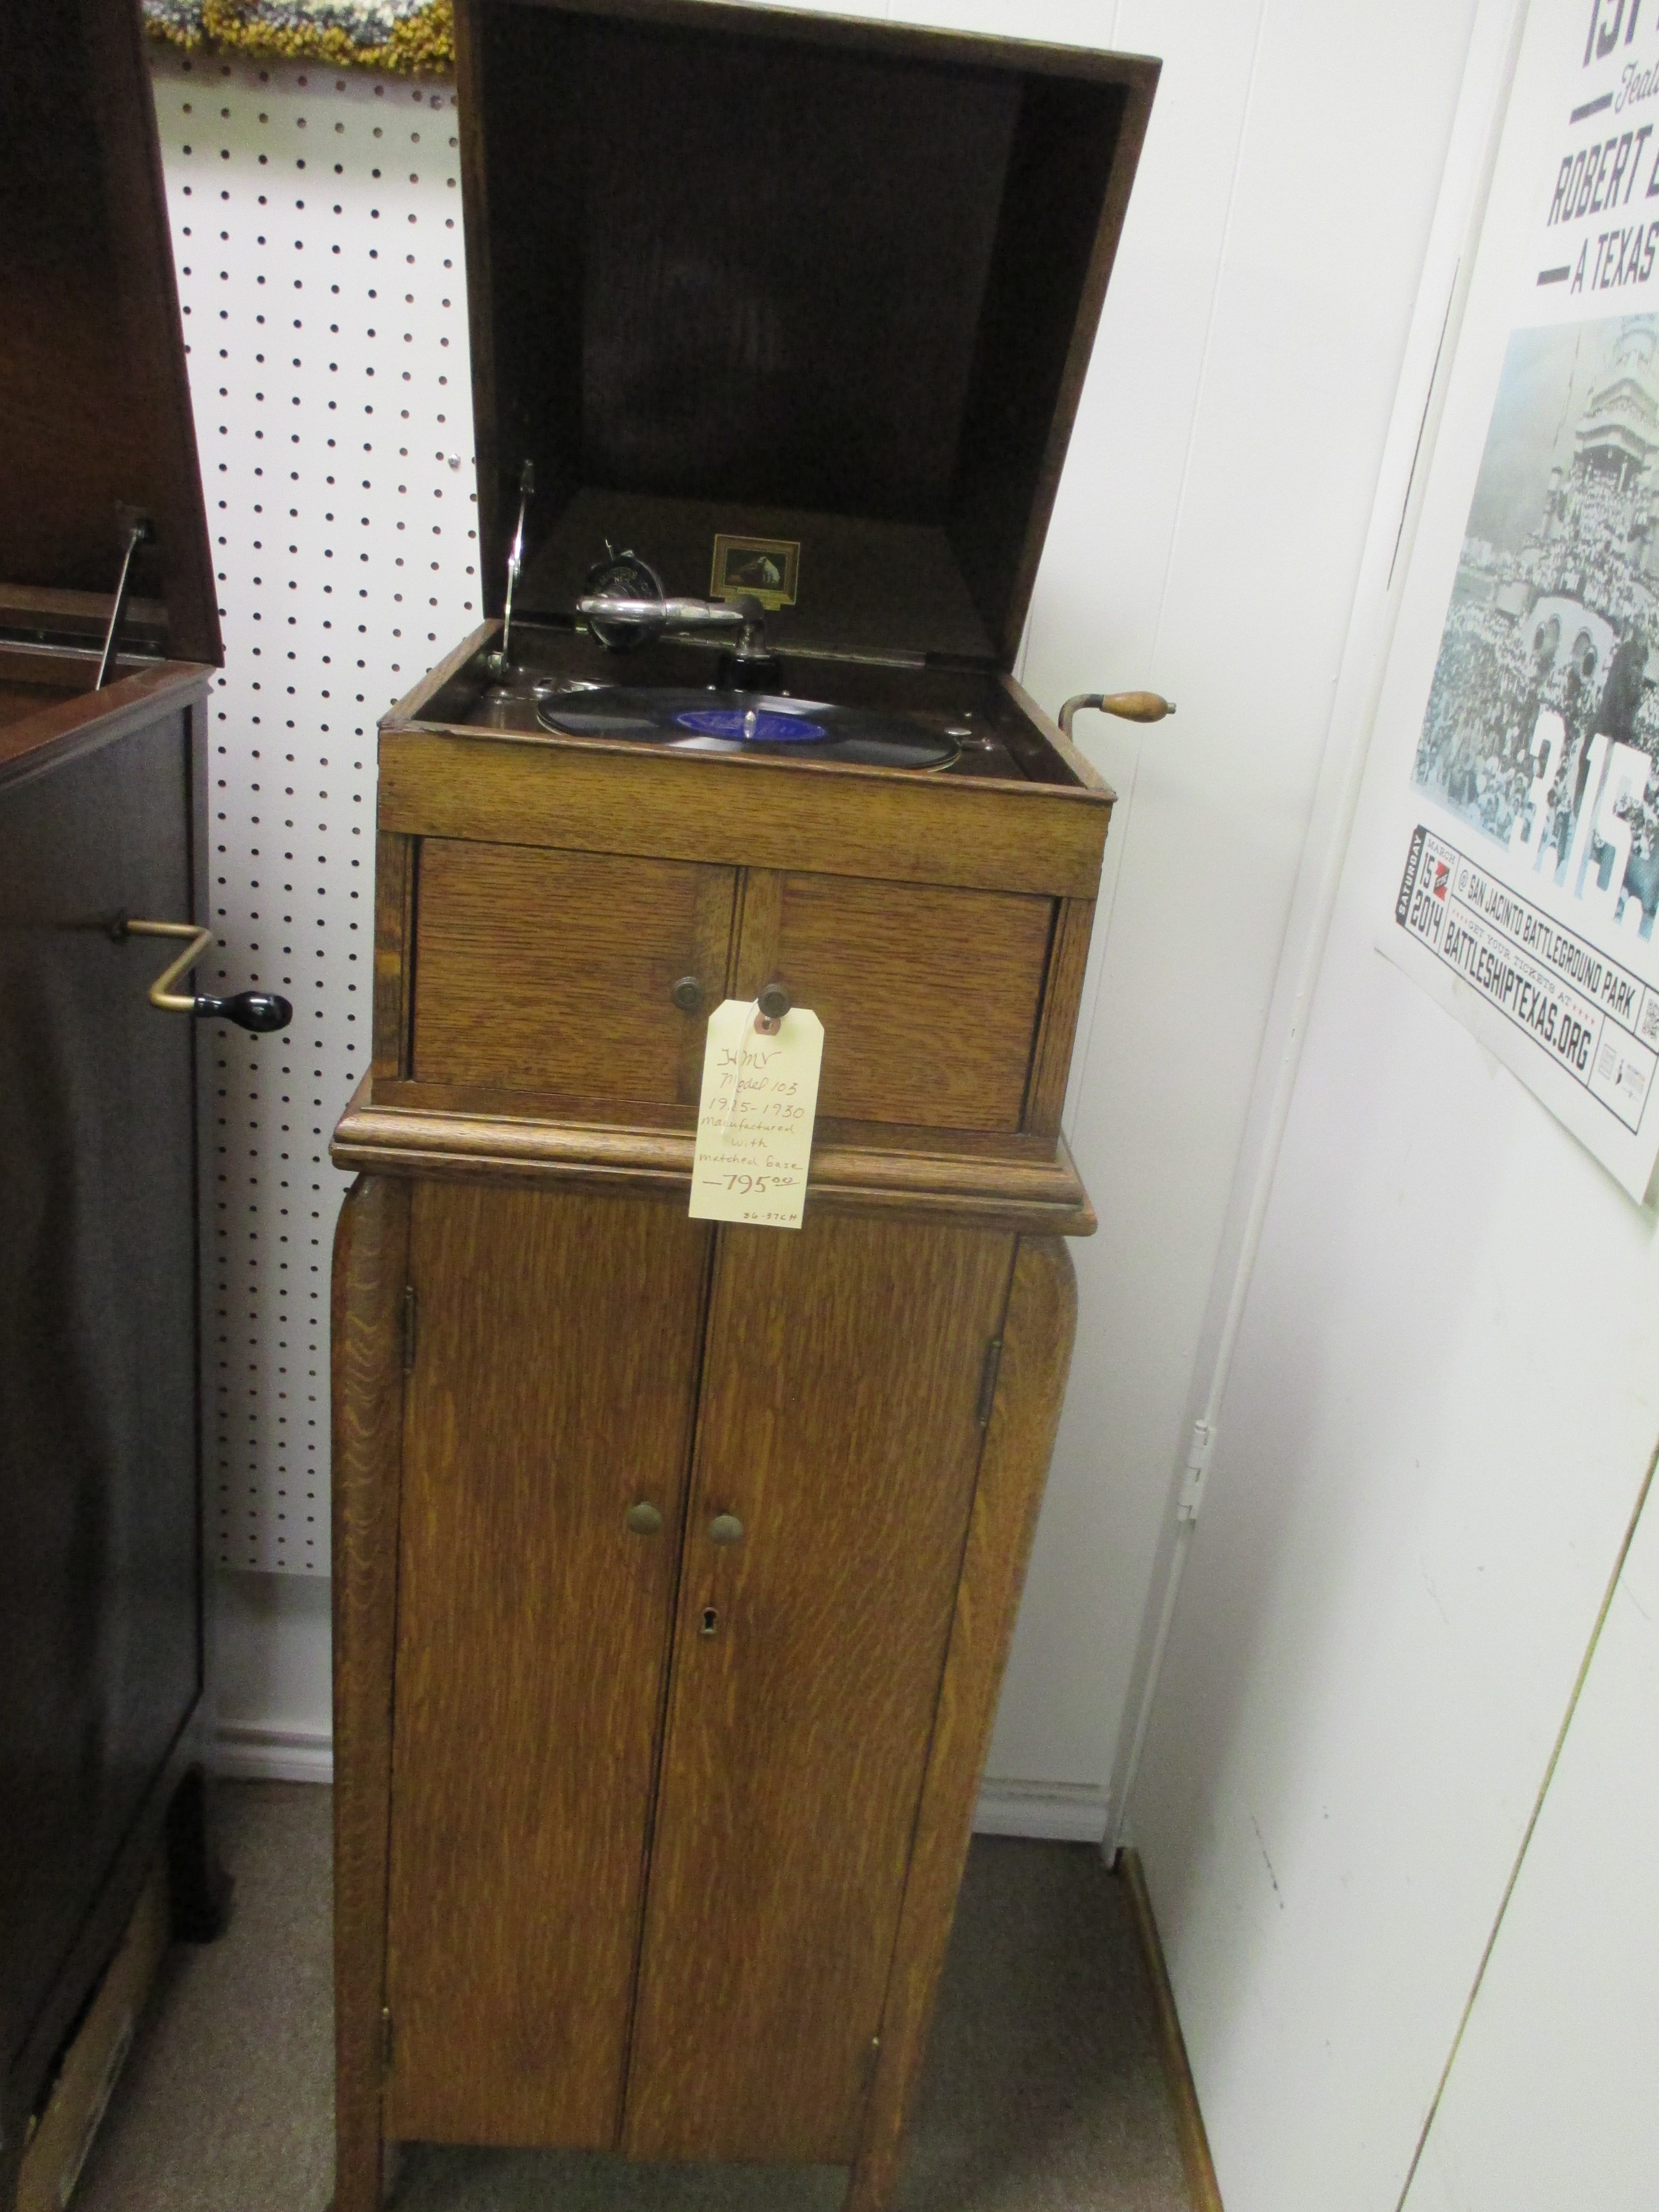 His Masters Voice model 103 with matching oak base record cabinet $795